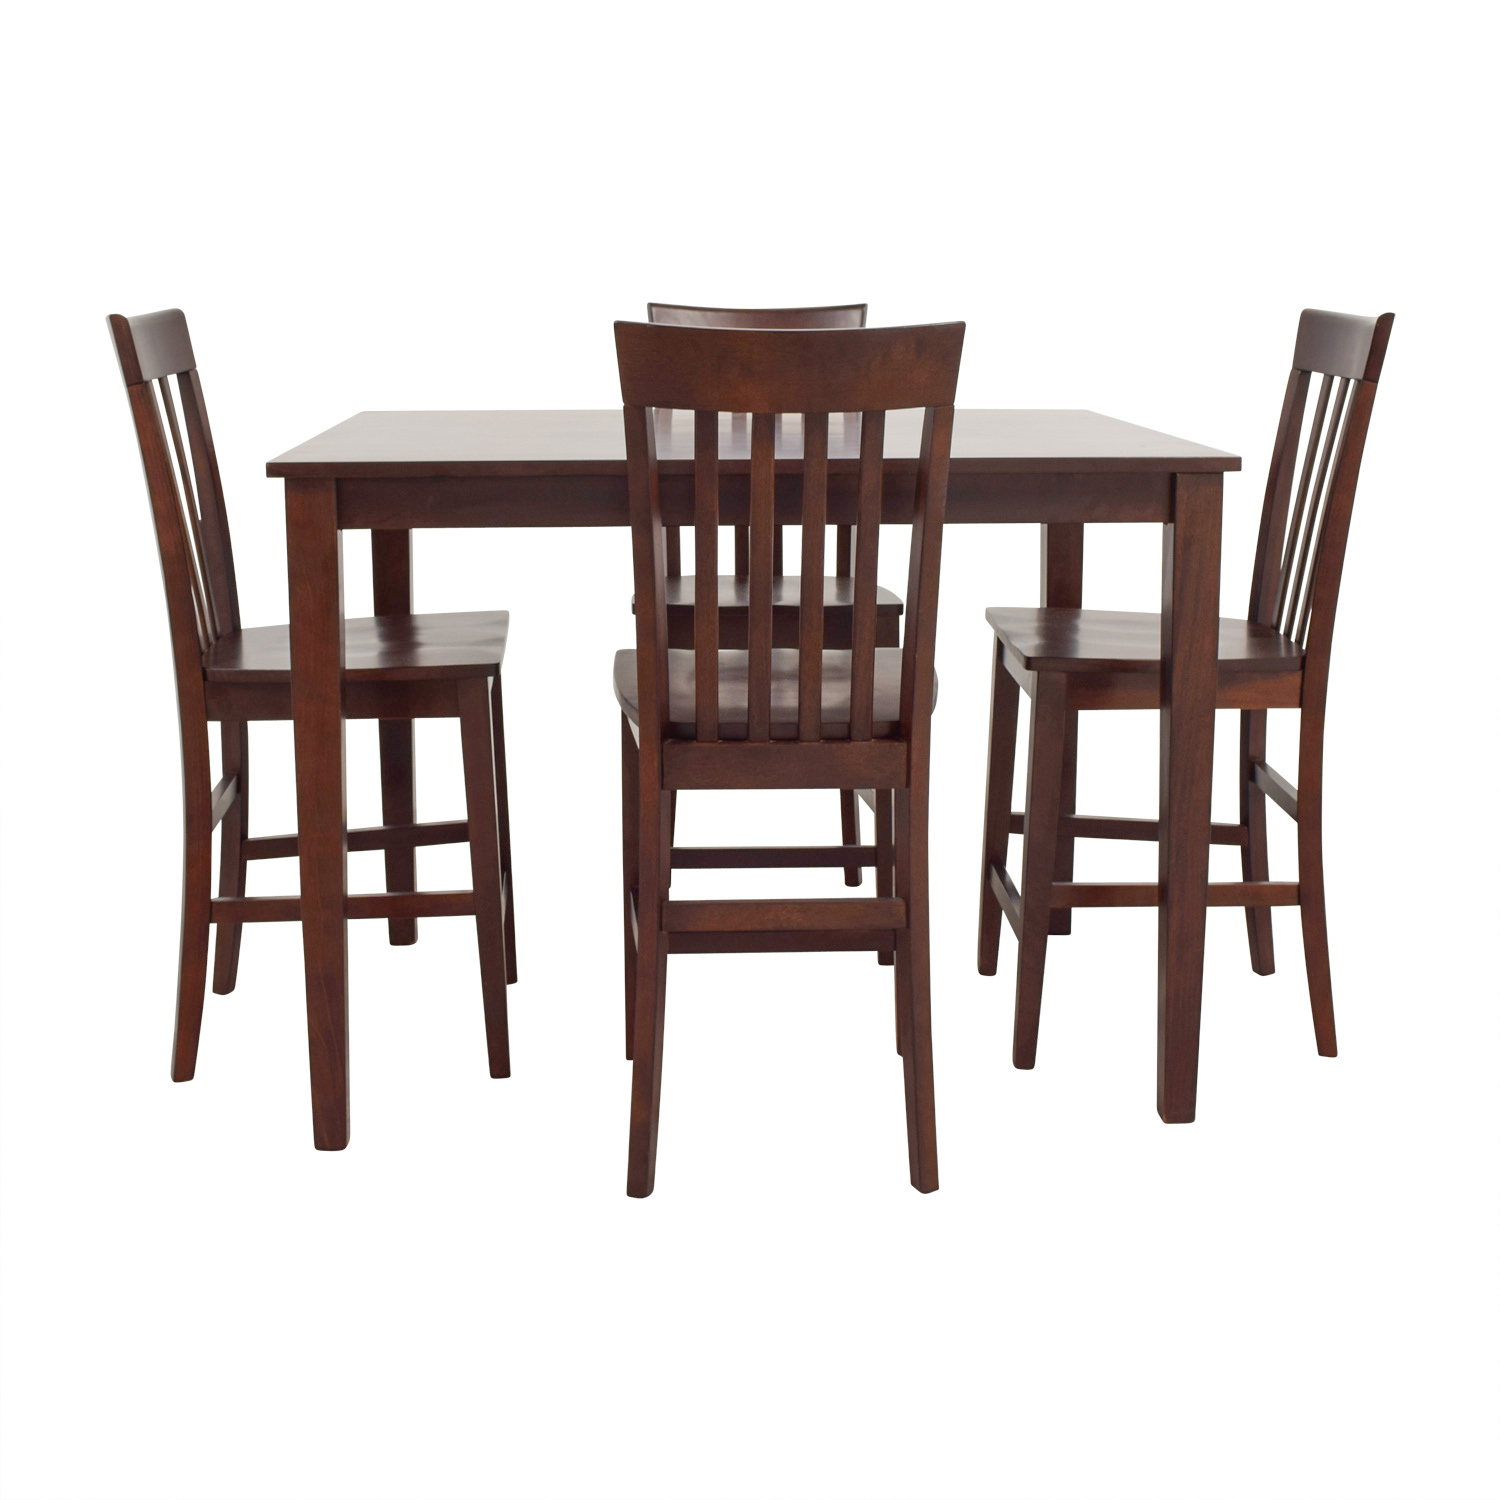 Raymour and Flanigan Raymour & Flanigan Bellanest Counter Height Dining Set price